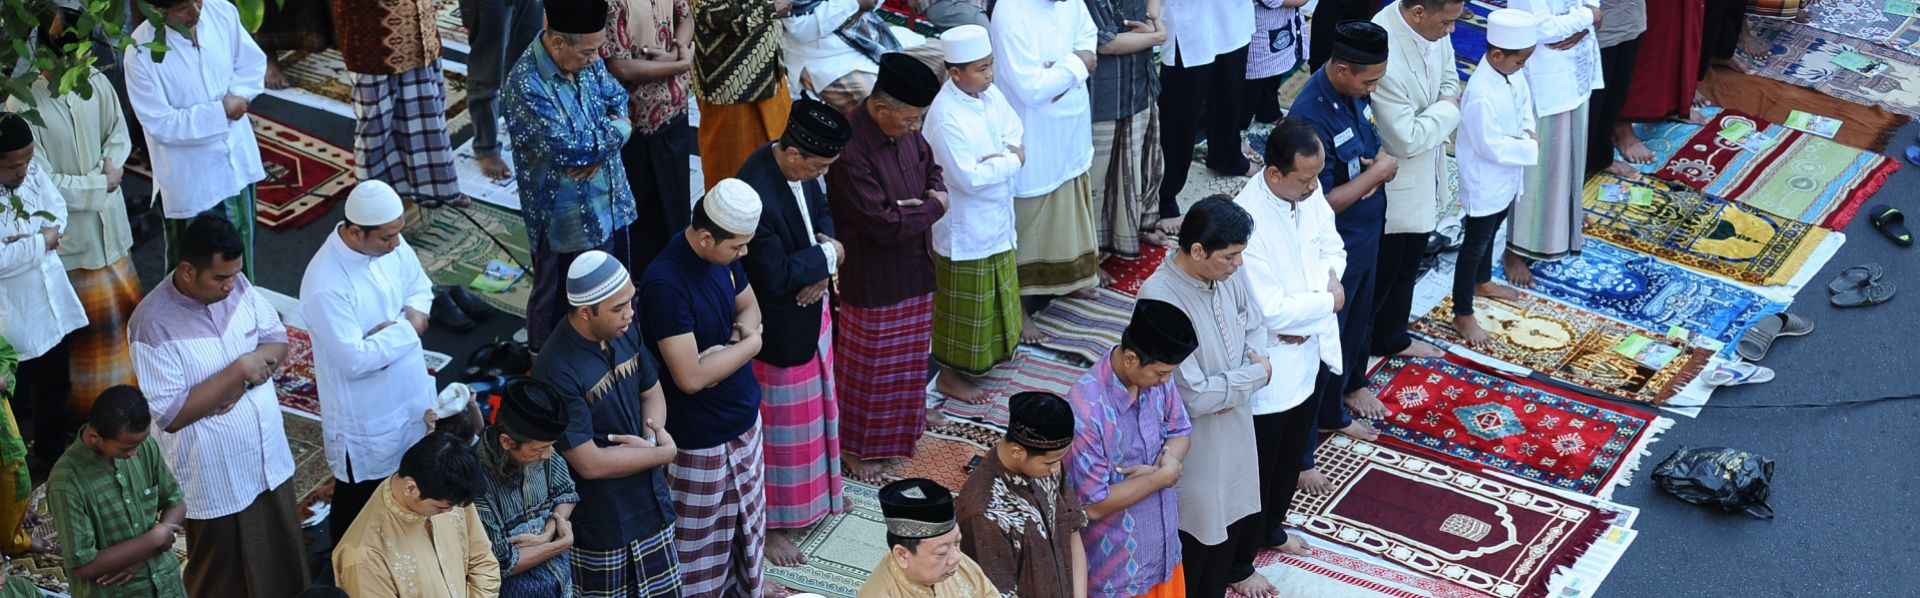 Indonesia and the Future of Islam